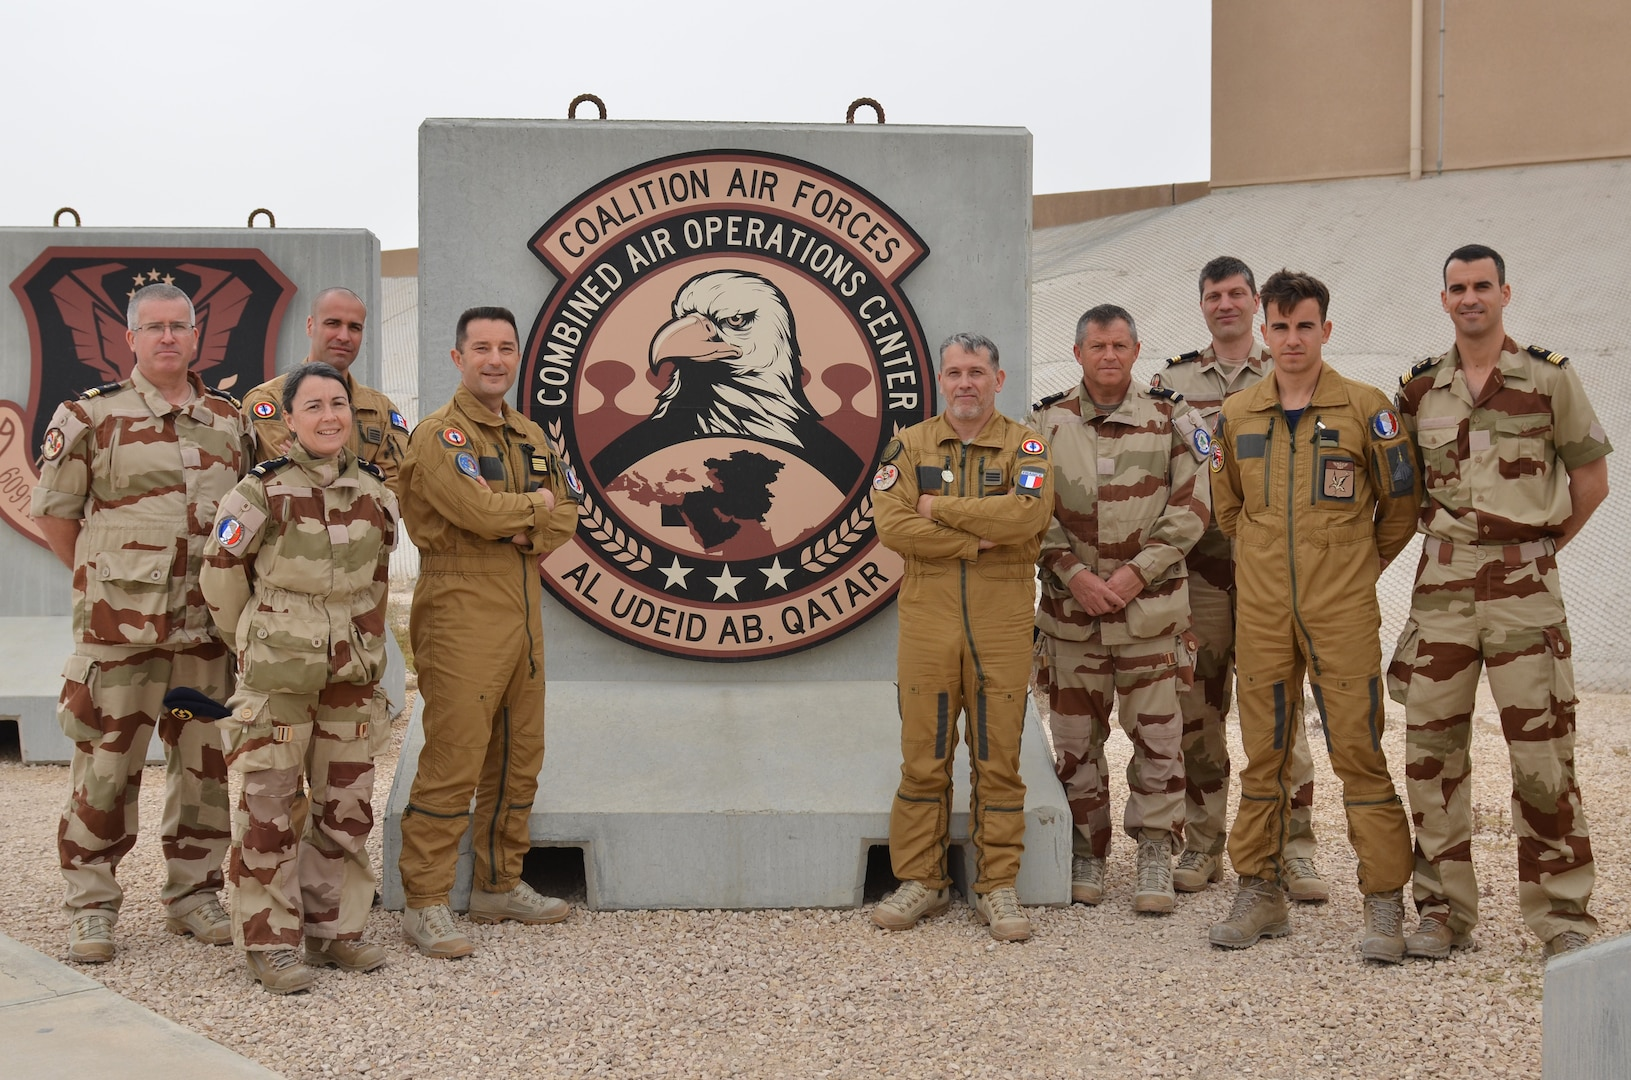 The French detachment at the Combined Air Operations Center (CAOC) in Al Udeid Airforce Base, Qatar, has been recently reinforced by a significant French Navy backups supporting Operation Inherent Resolve.